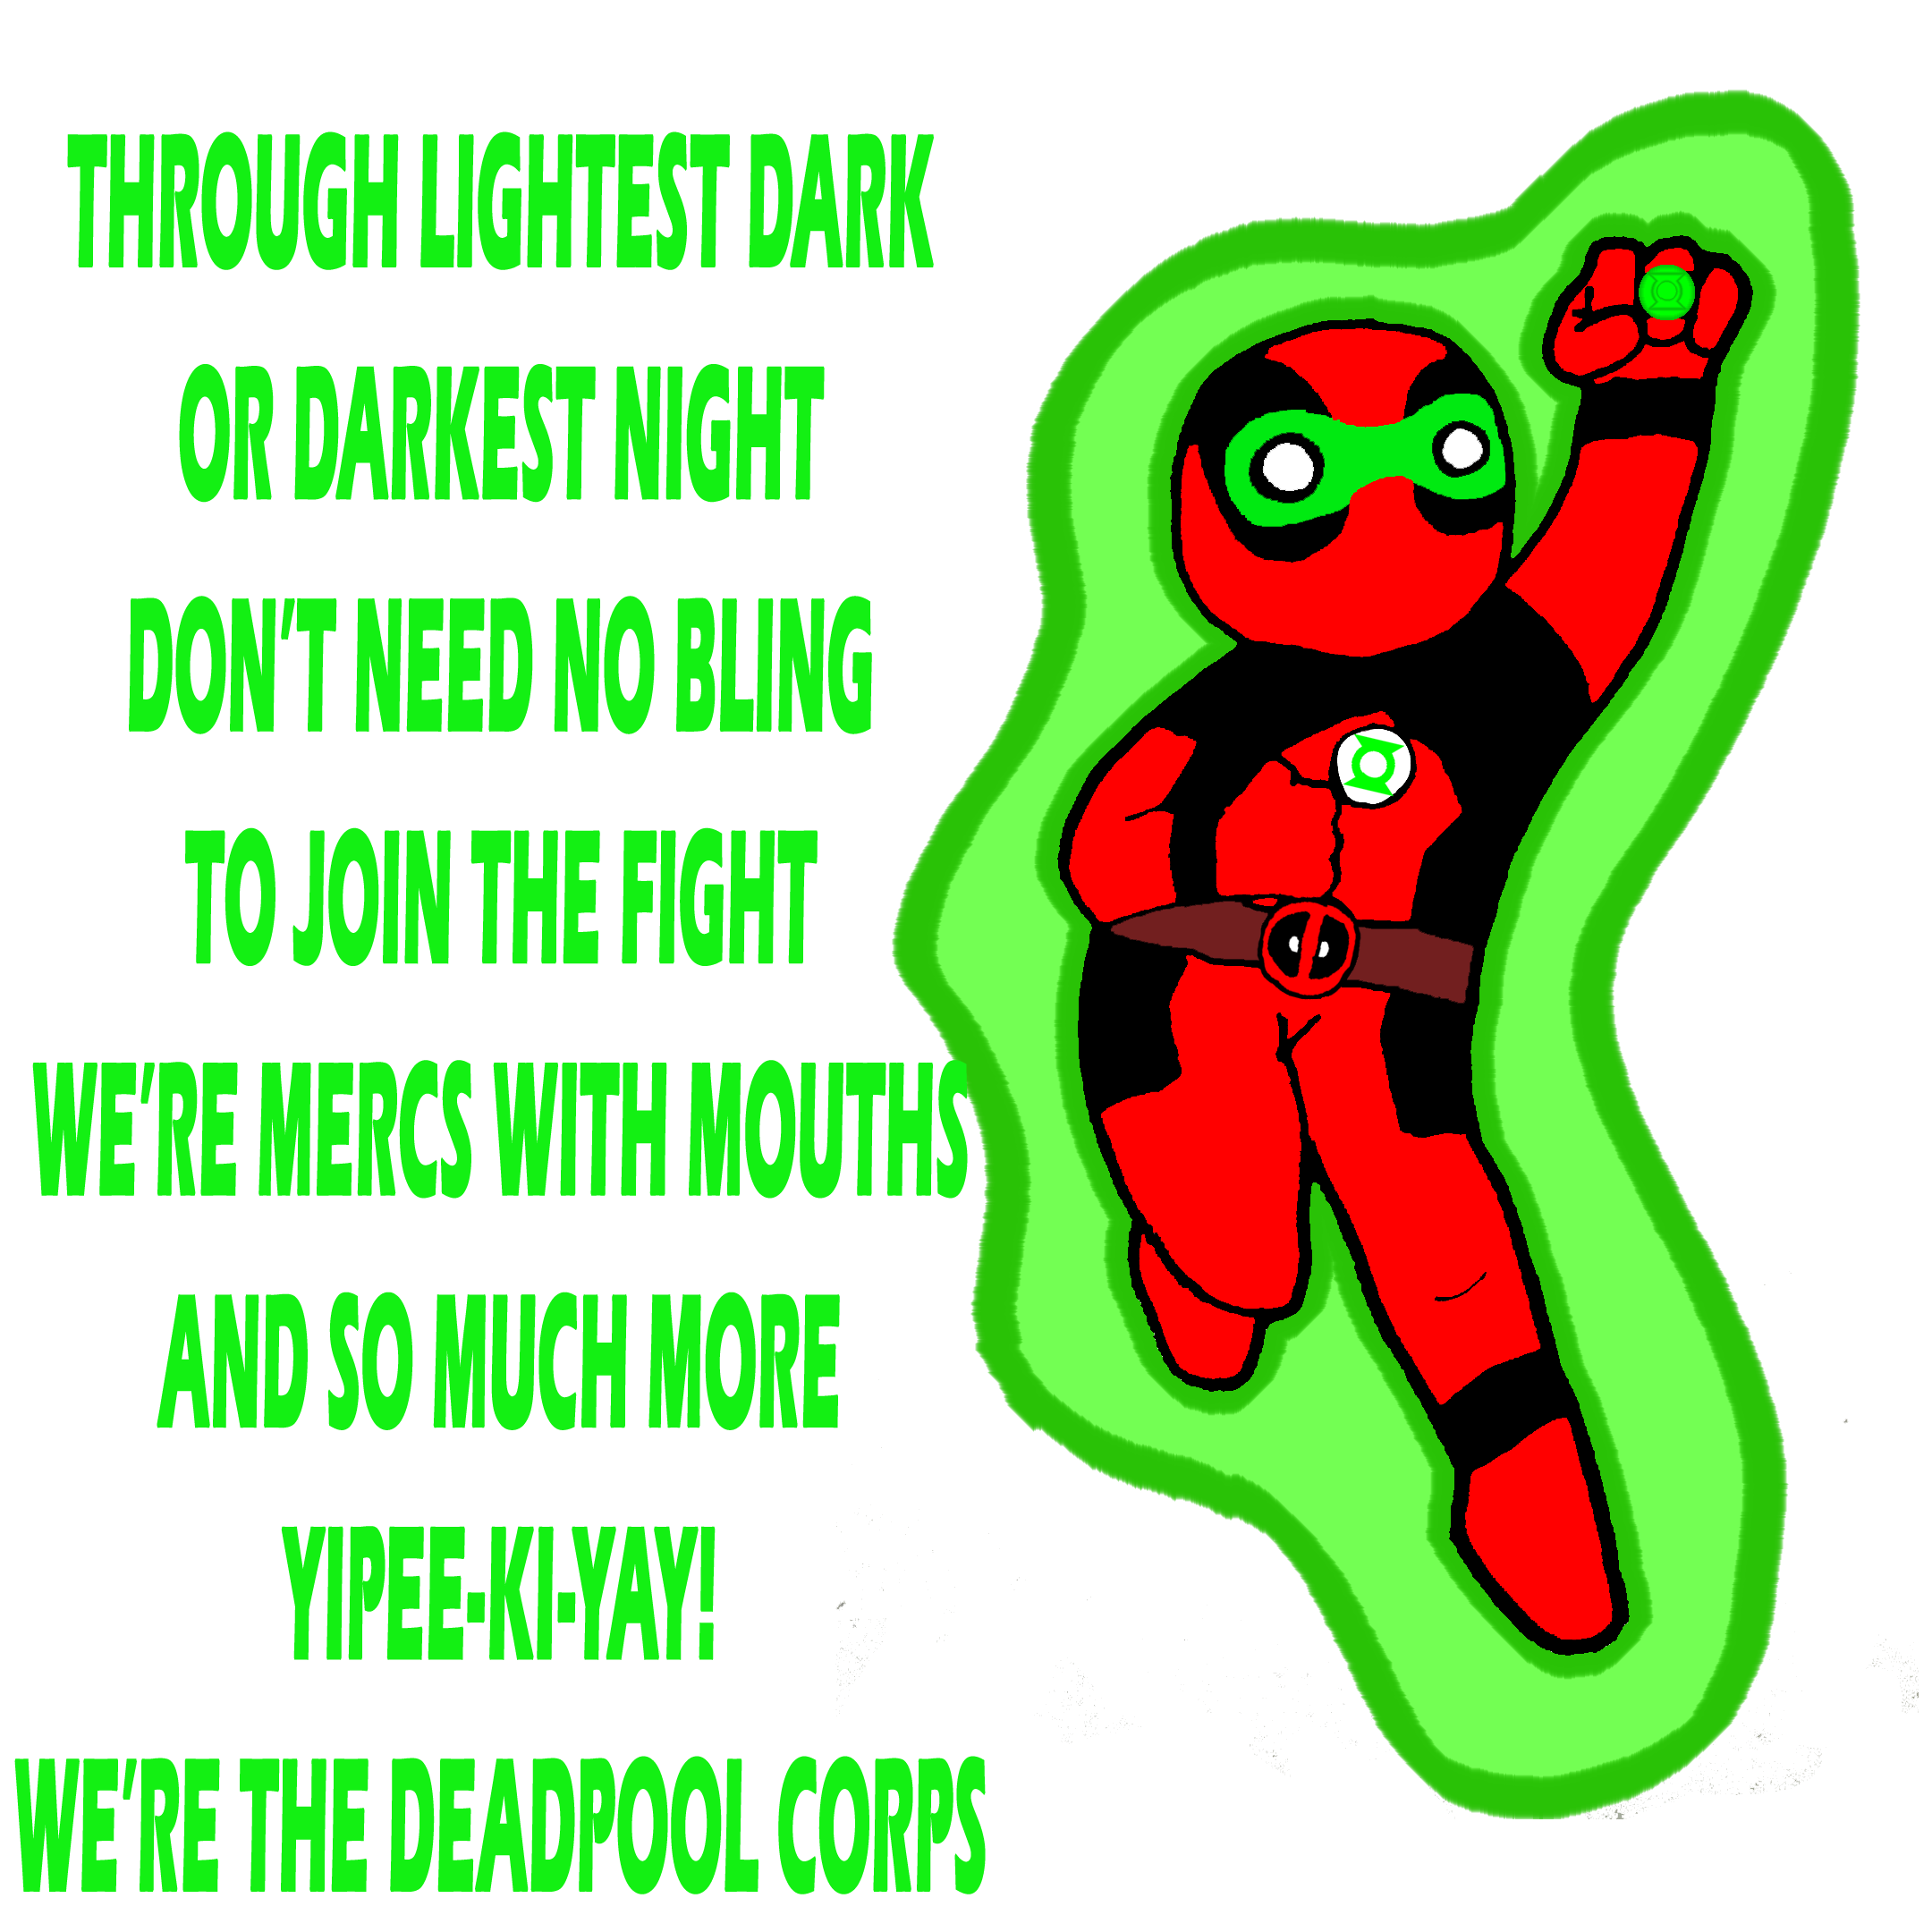 Deadpool Green Lantern